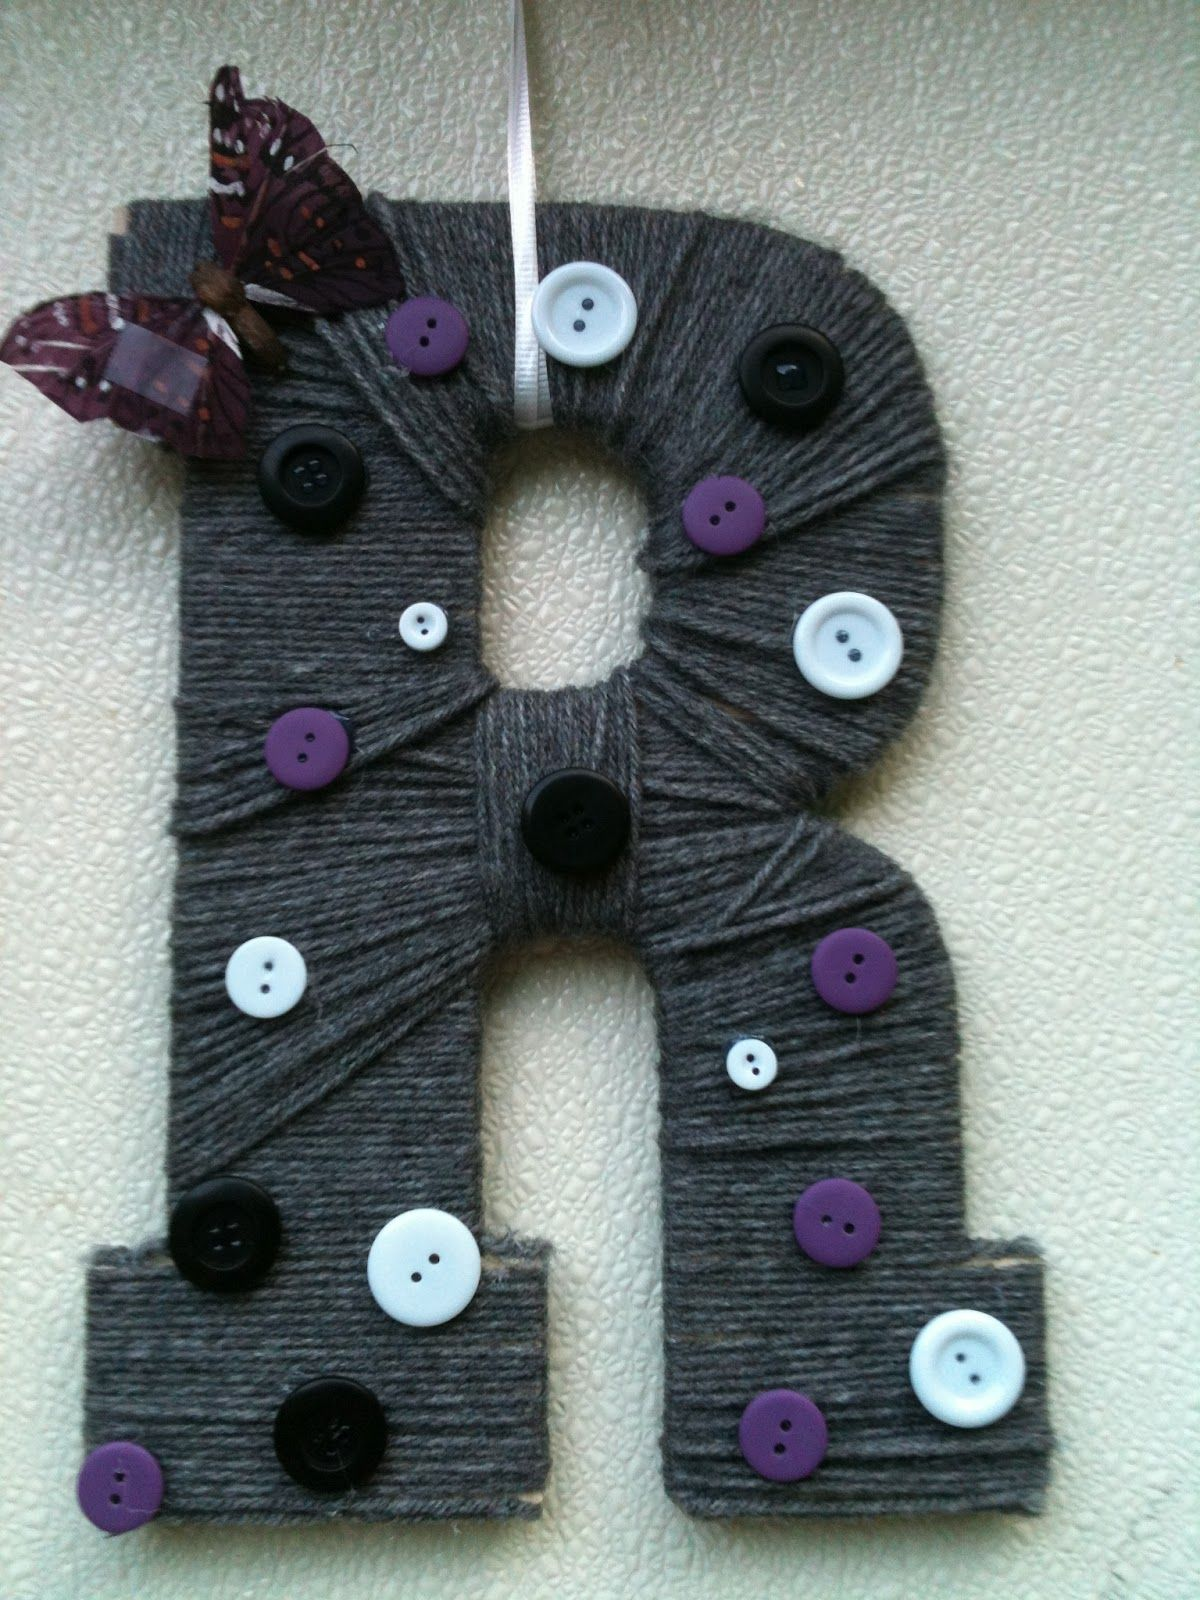 It's a yarn covered letter, no it's a button covered letter....ok, so it's a yarn/button covered letter :)